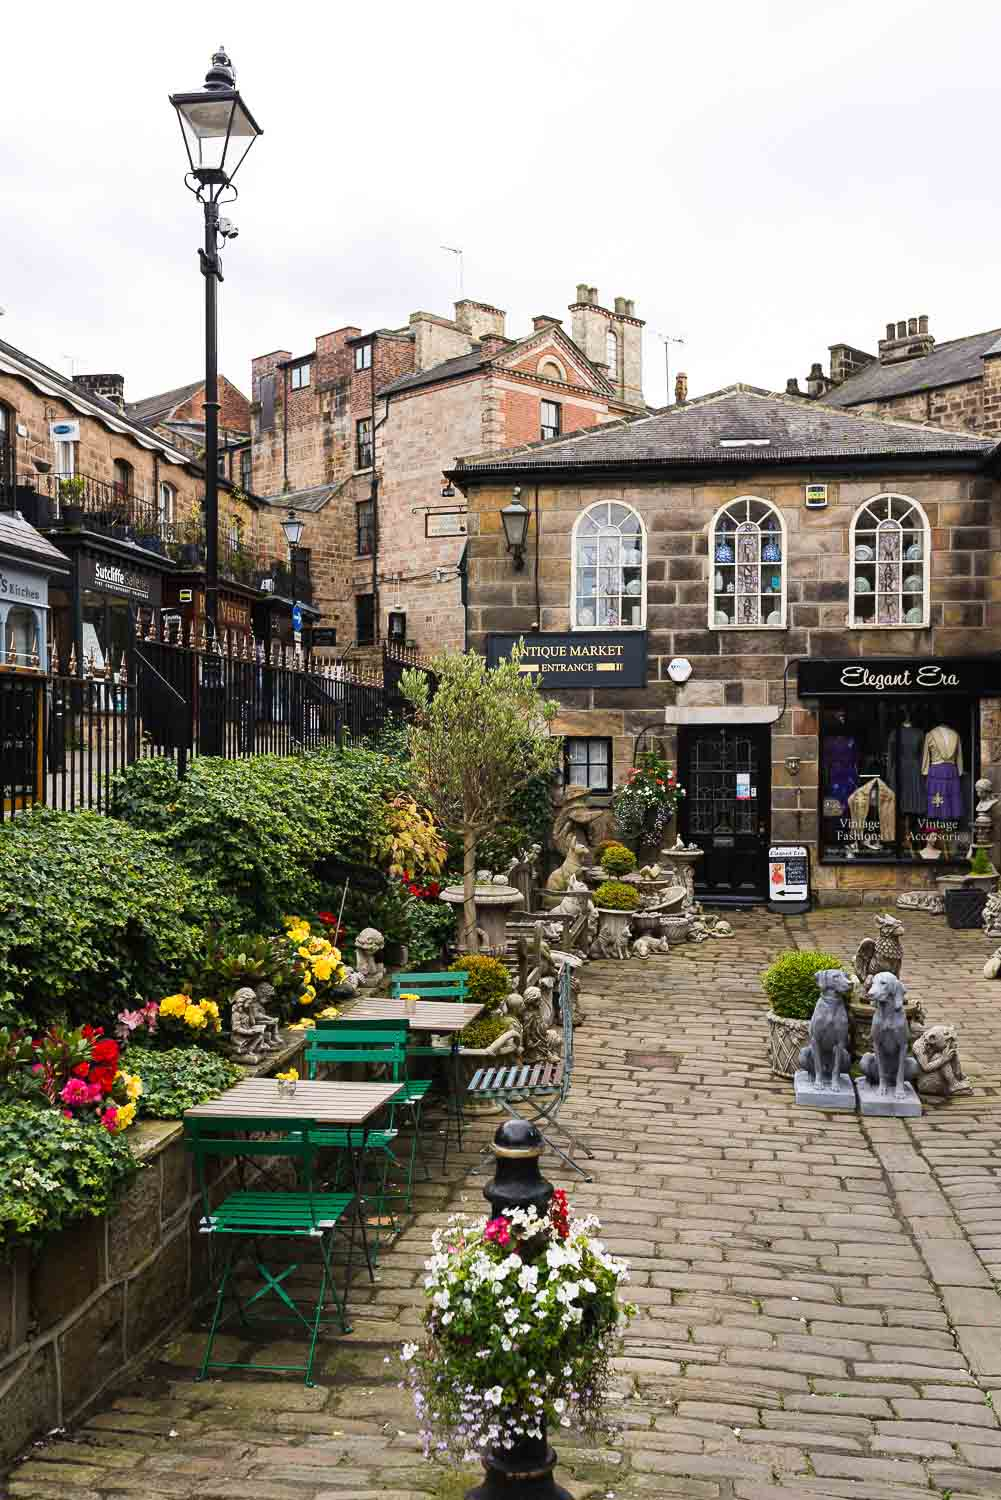 Montpellier Quarter in Harrogate, a town in North Yorkshire, England